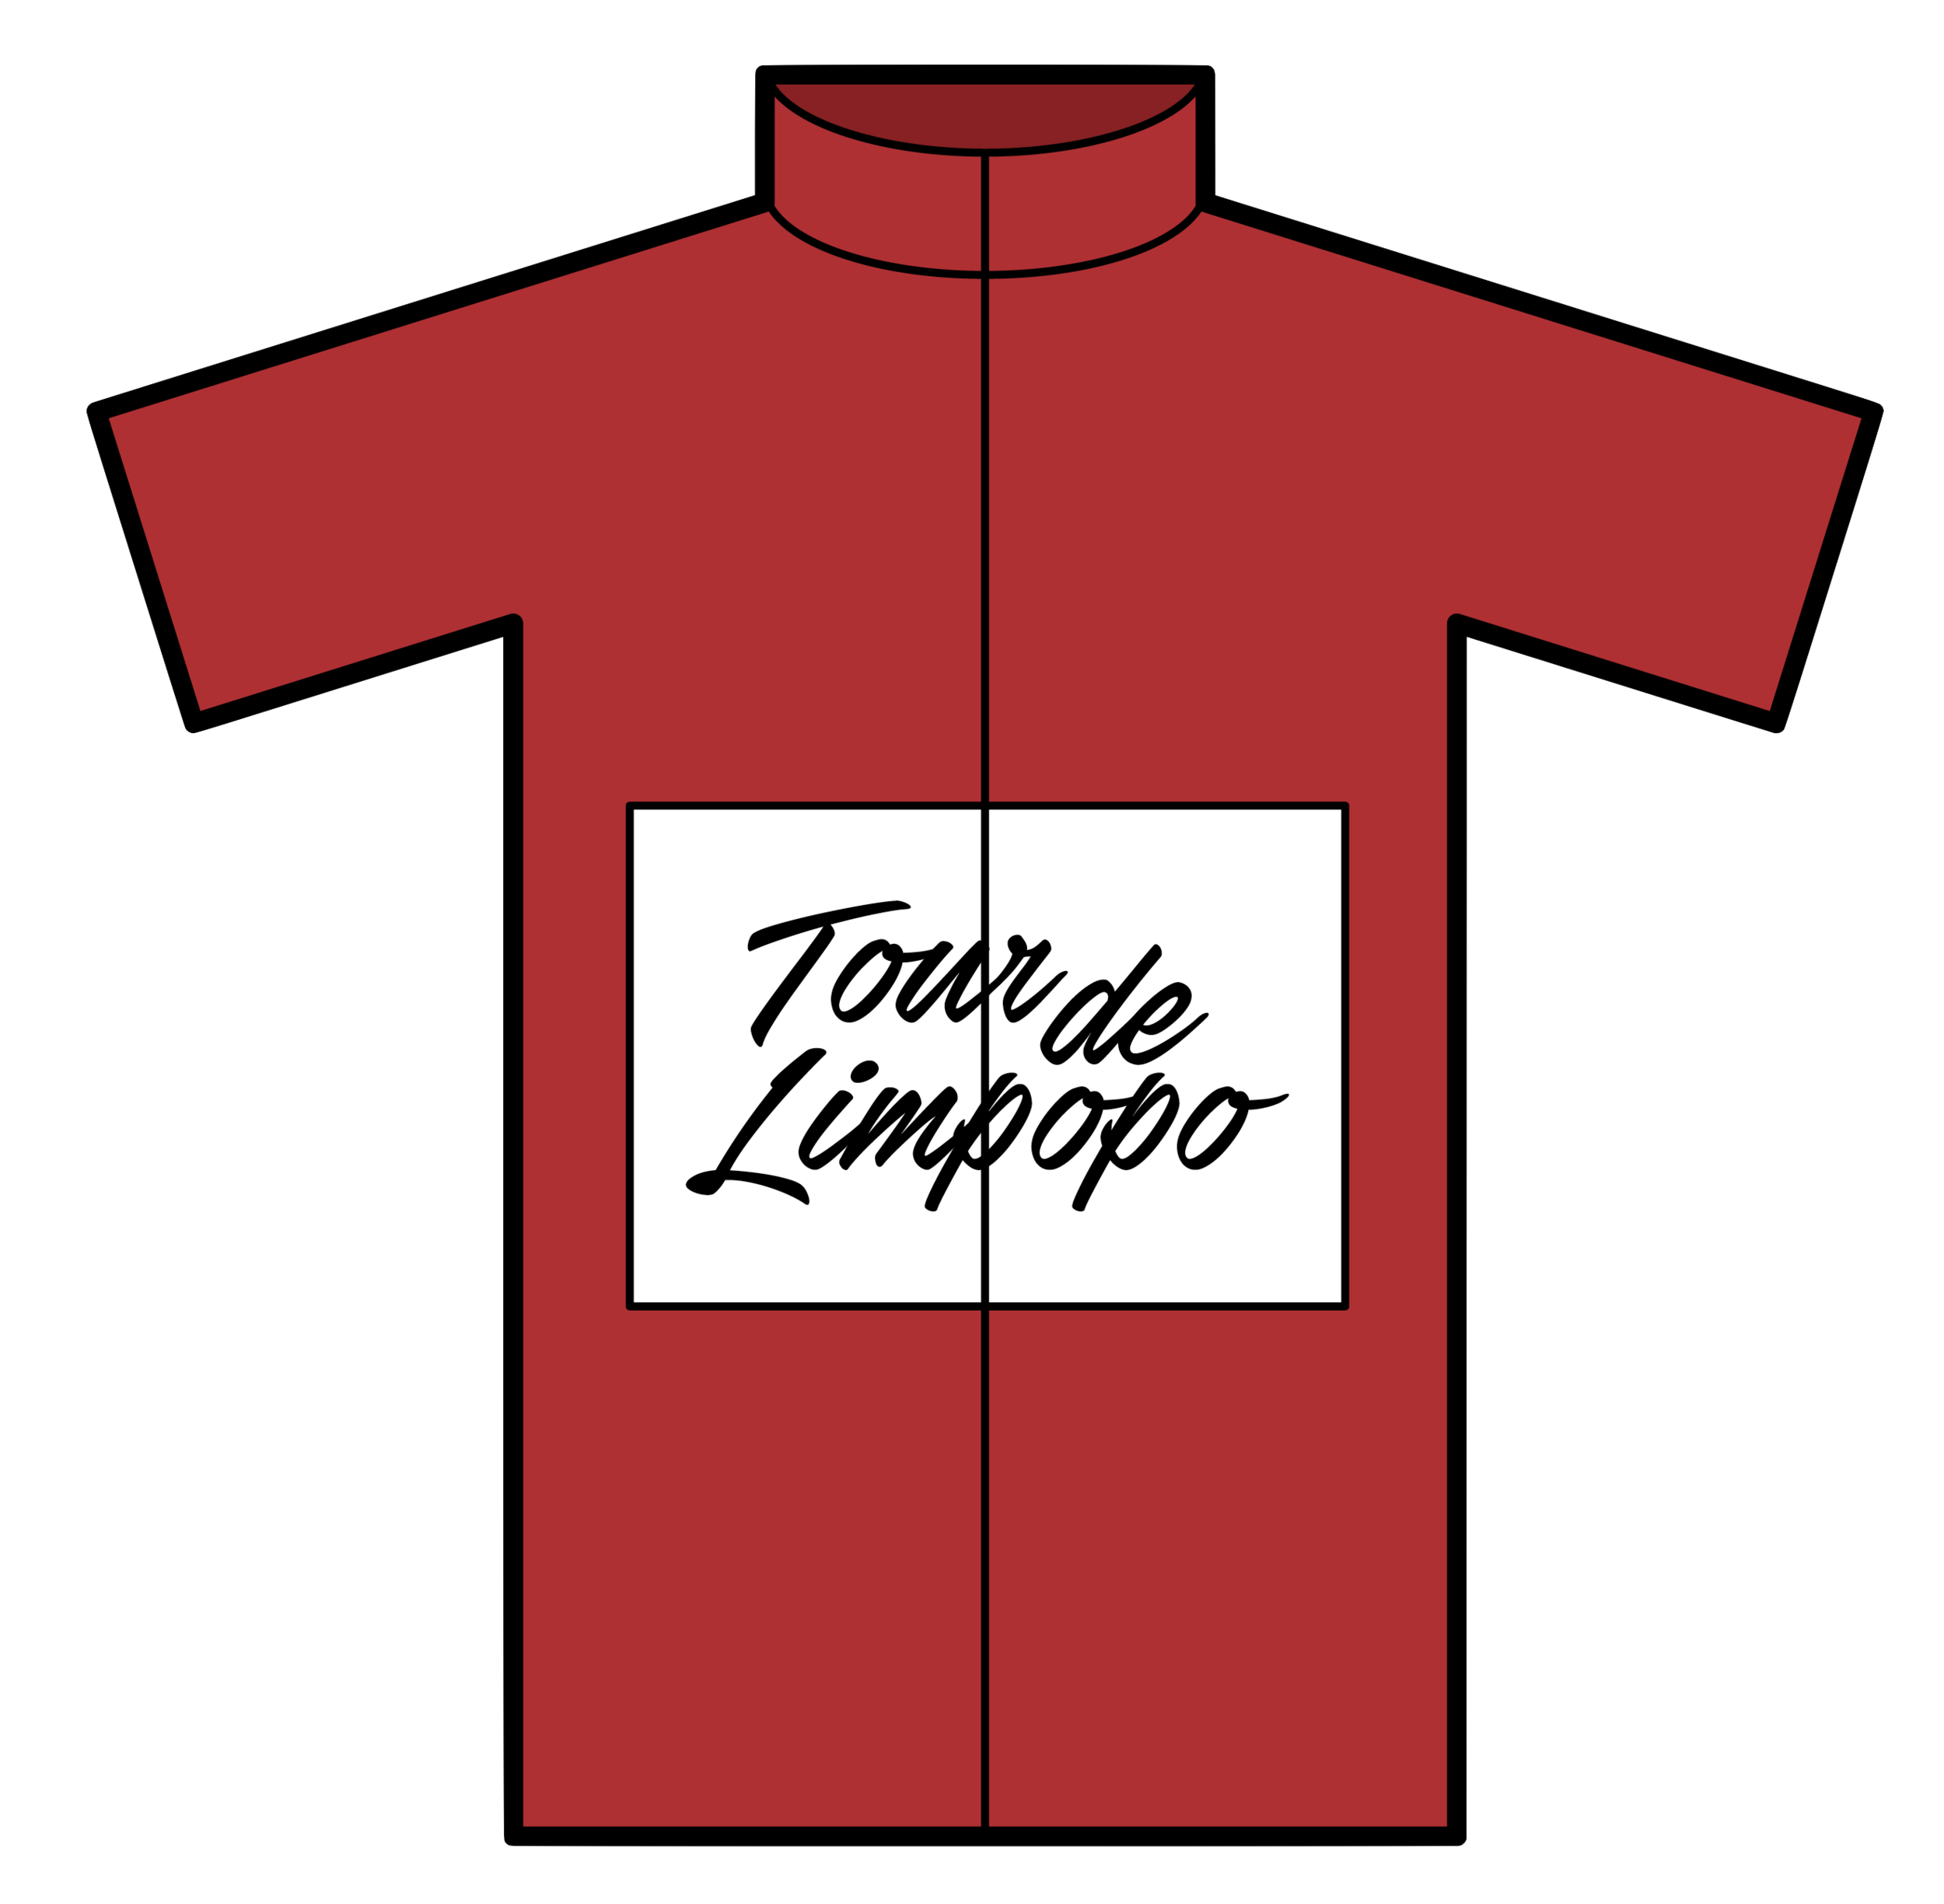 tour-de-limpopo-red-jersey.png